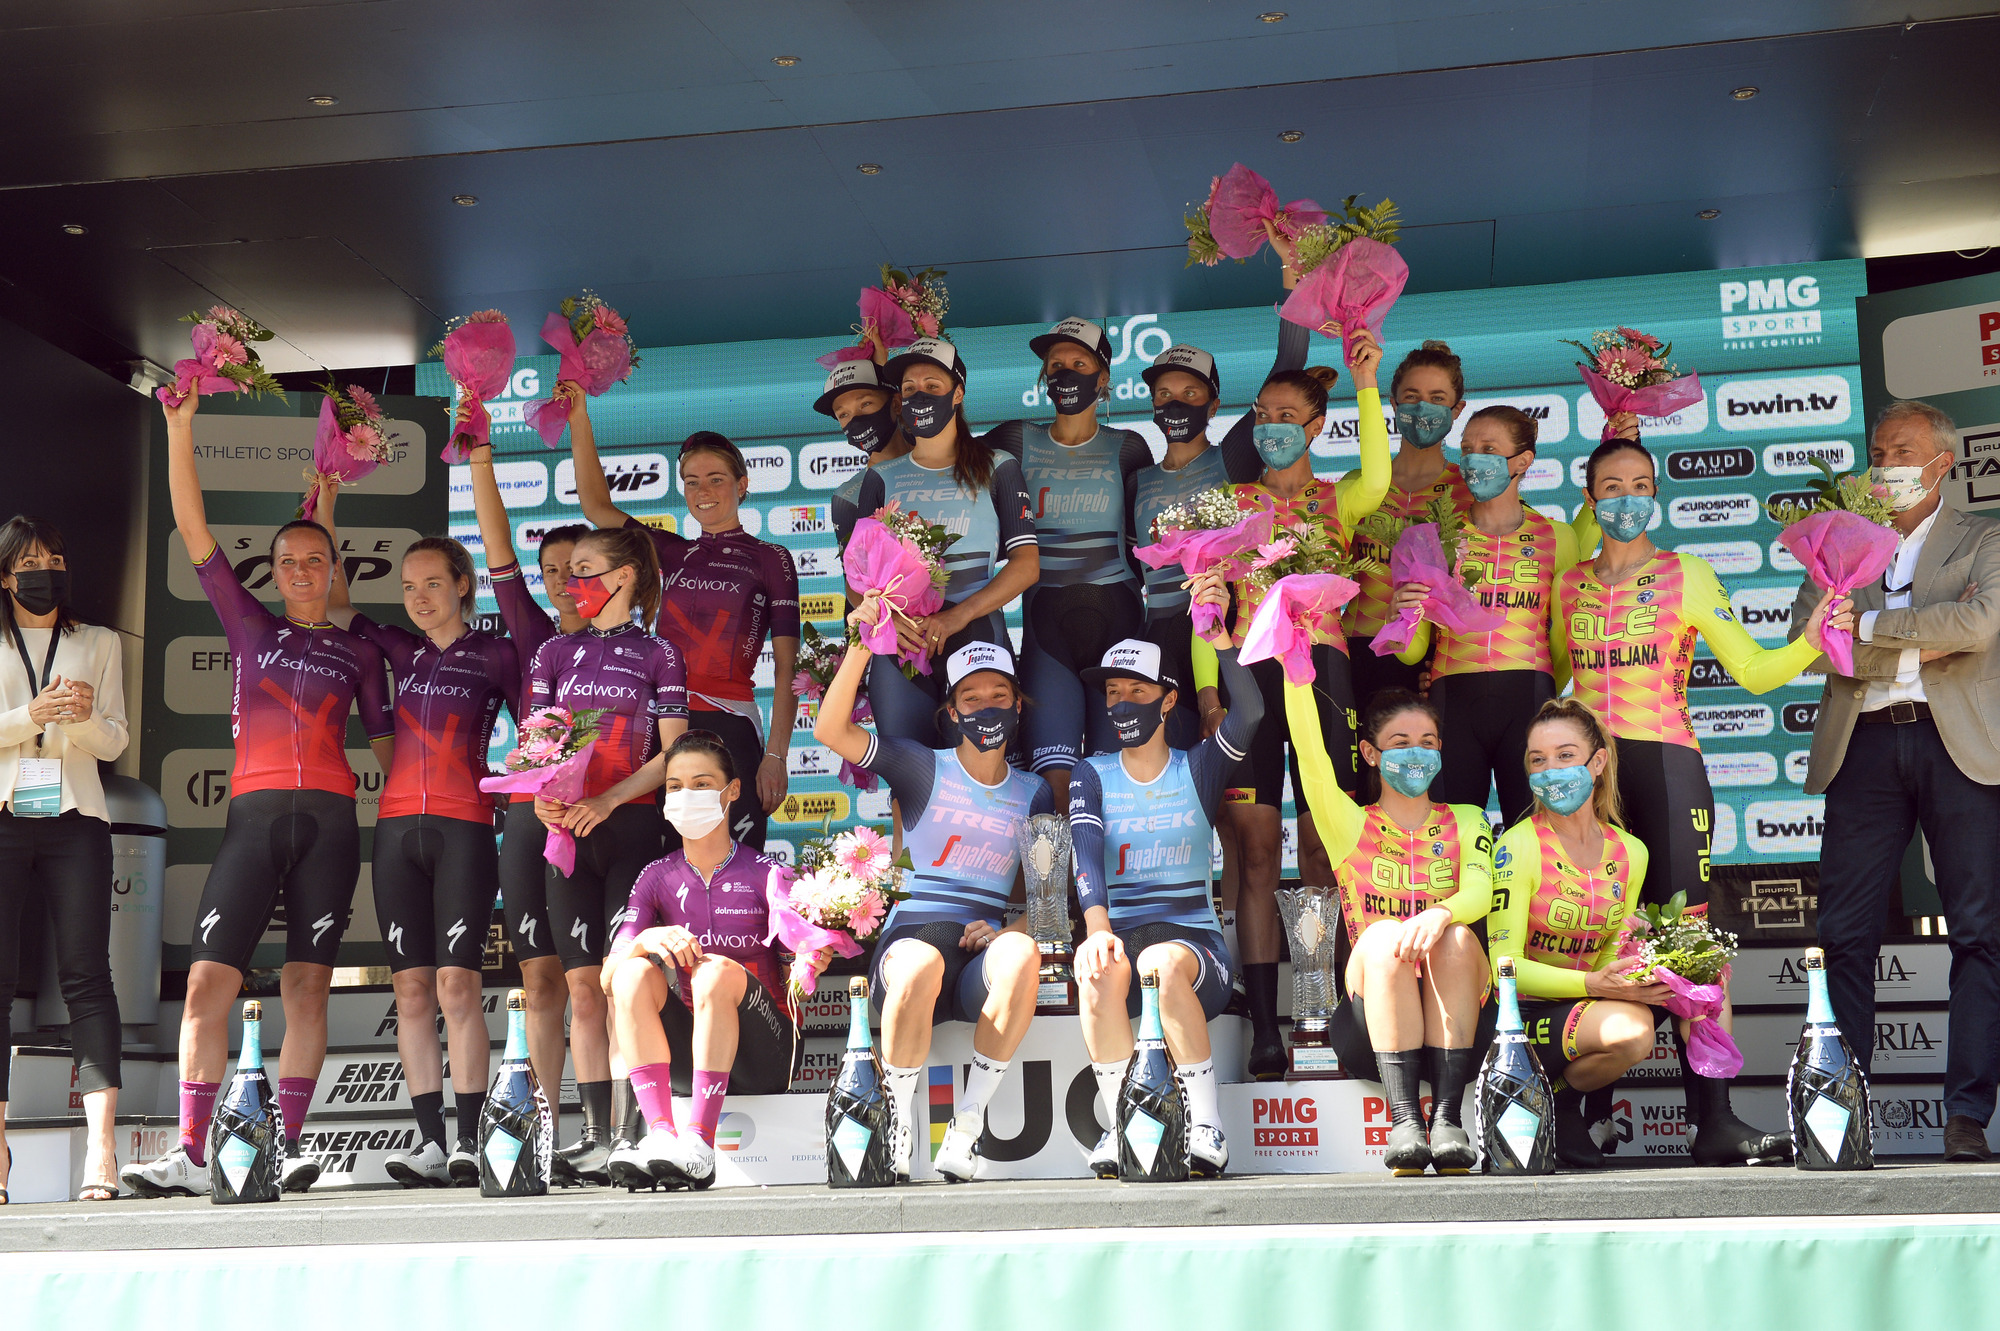 Trek- Segafredo wins the opening team time trial, the first Maglia Rosa goes to Ruth Winder